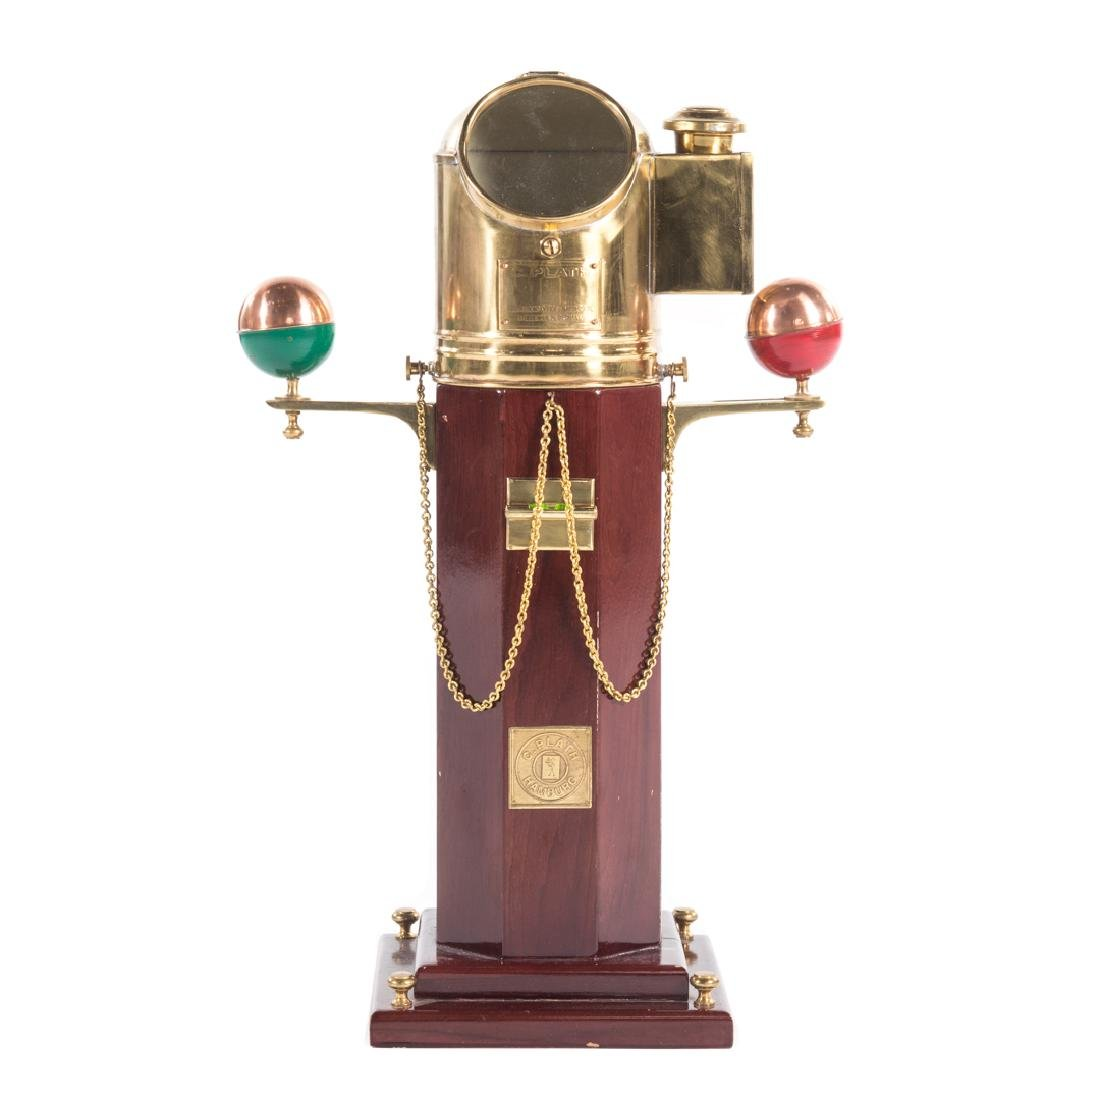 C. Plath miniature brass binnacle on stand